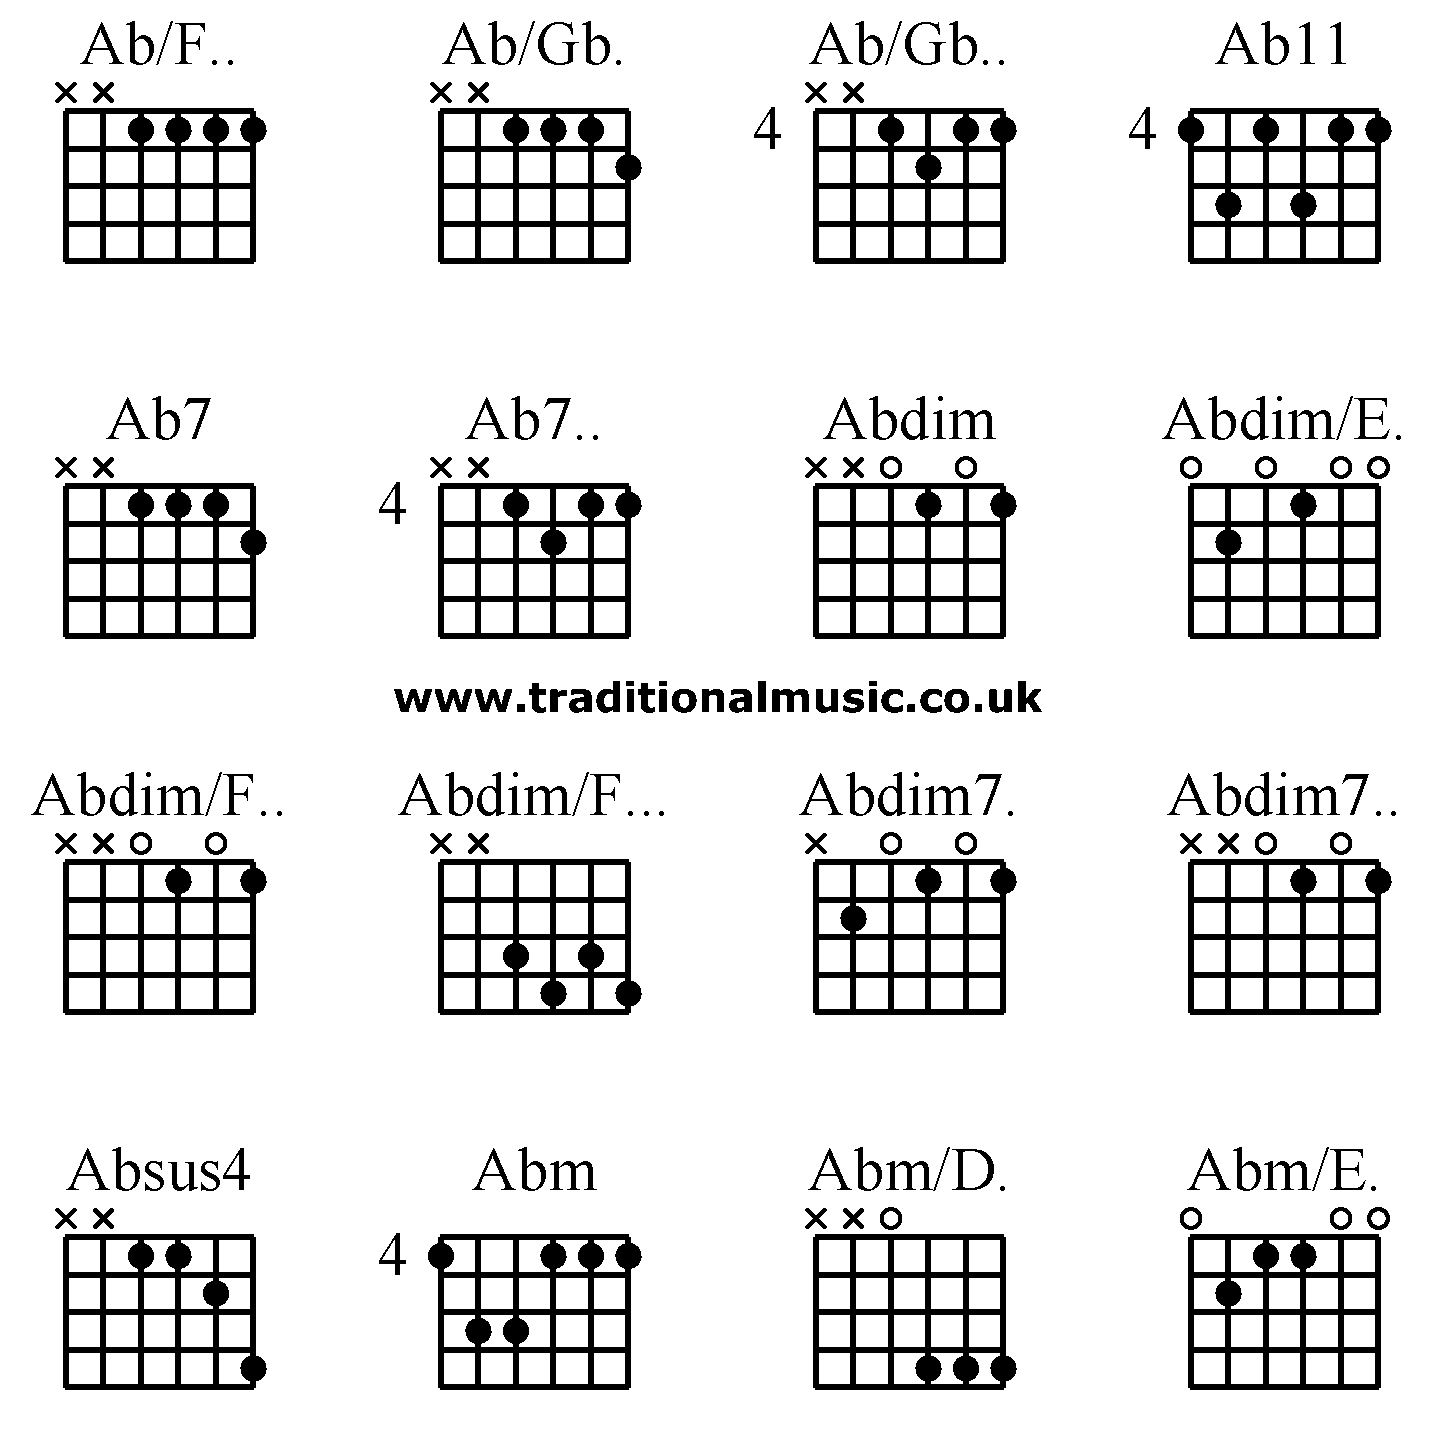 Advanced Guitar Chords Ab F Ab Gb Ab Gb Ab11 Ab7